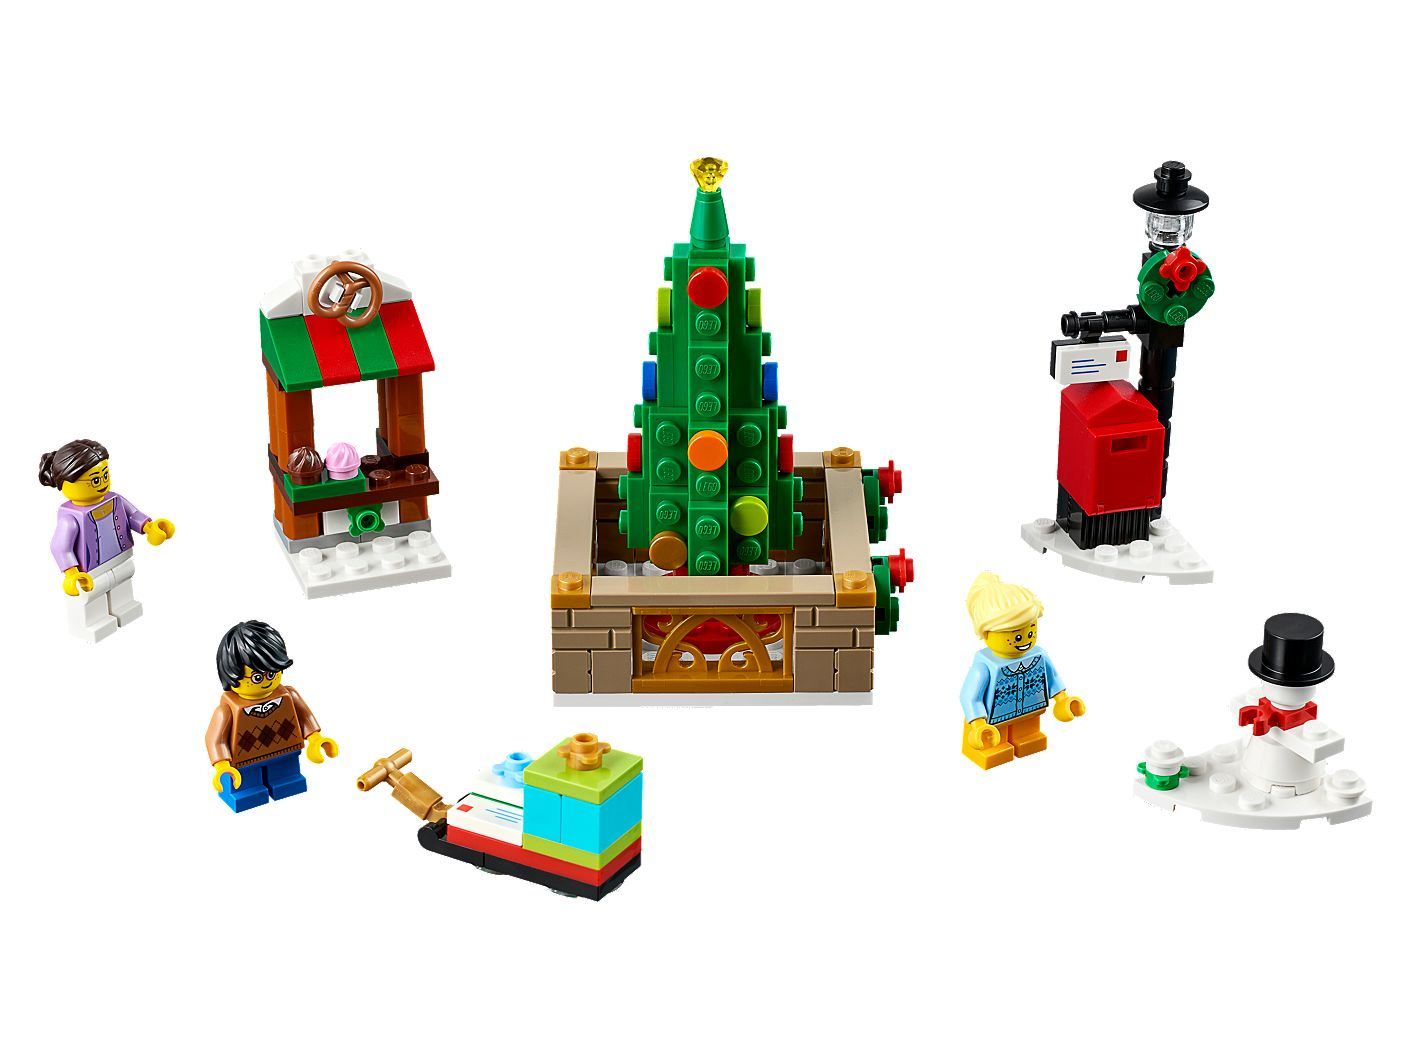 Lego Christmas.Lego Christmas Town Square 40263 Unknown Buy Online At The Official Lego Shop Ca